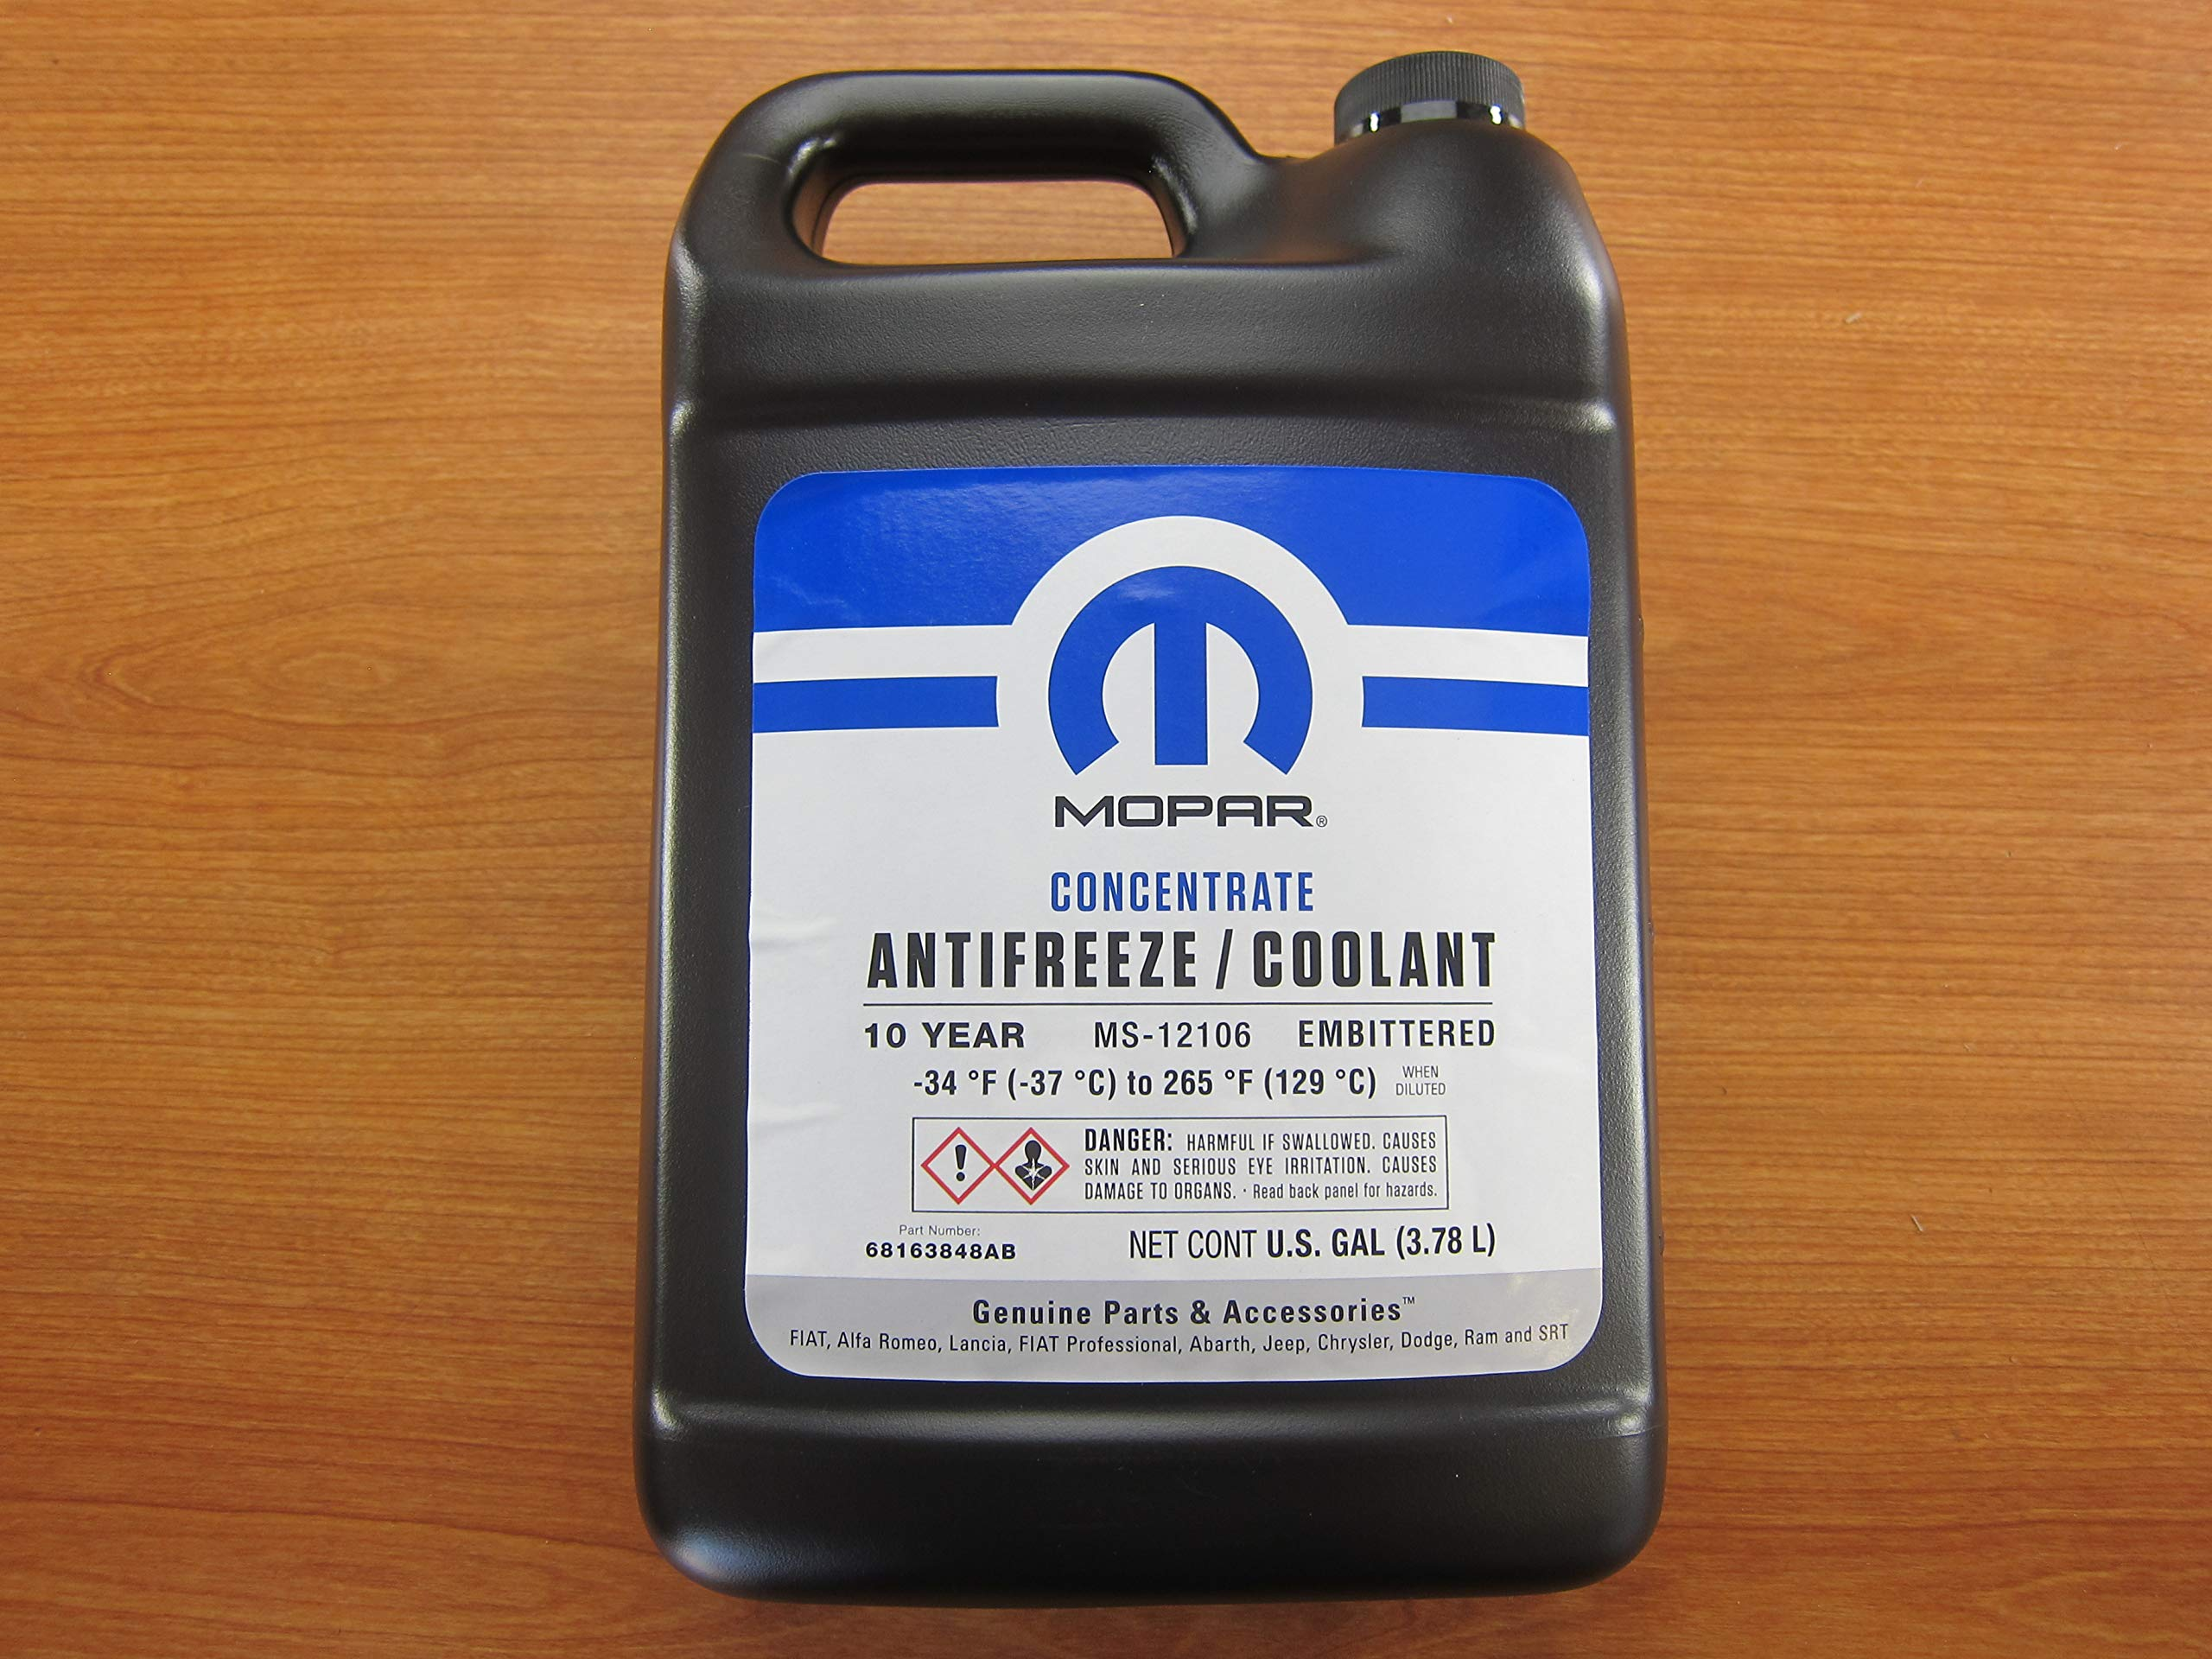 Mopar Chrysler Dodge Fiat Jeep Ram 10 Year Antifreeze/Coolant Concentrated OEM